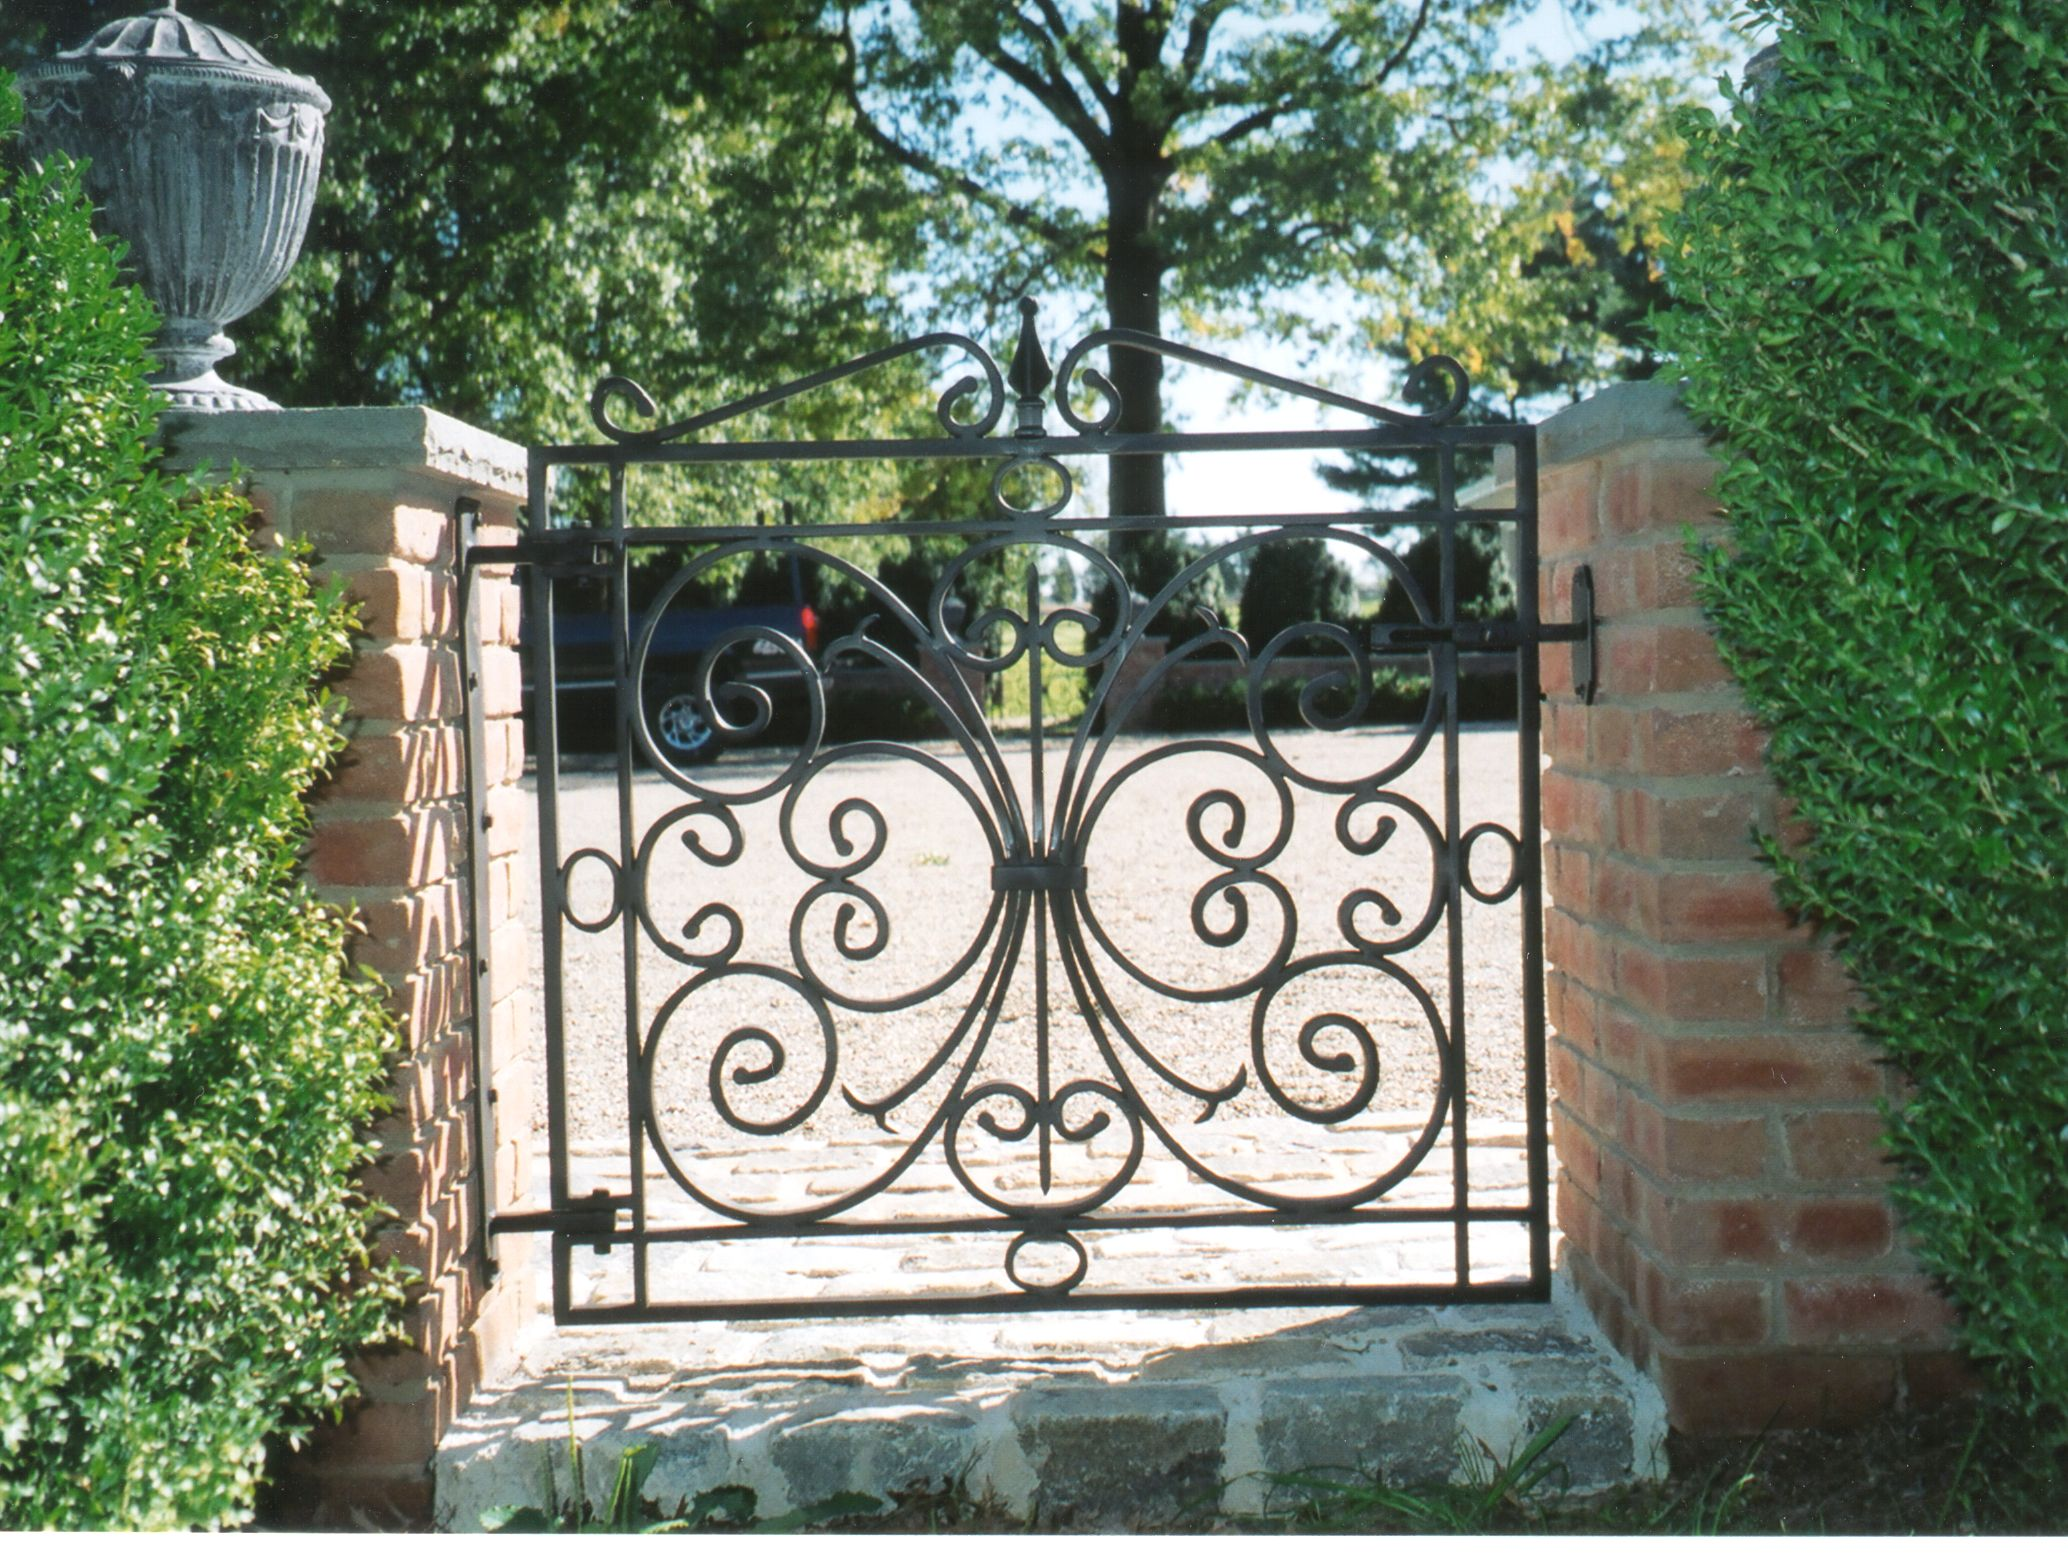 Lawler hand forged aluminum walk gate